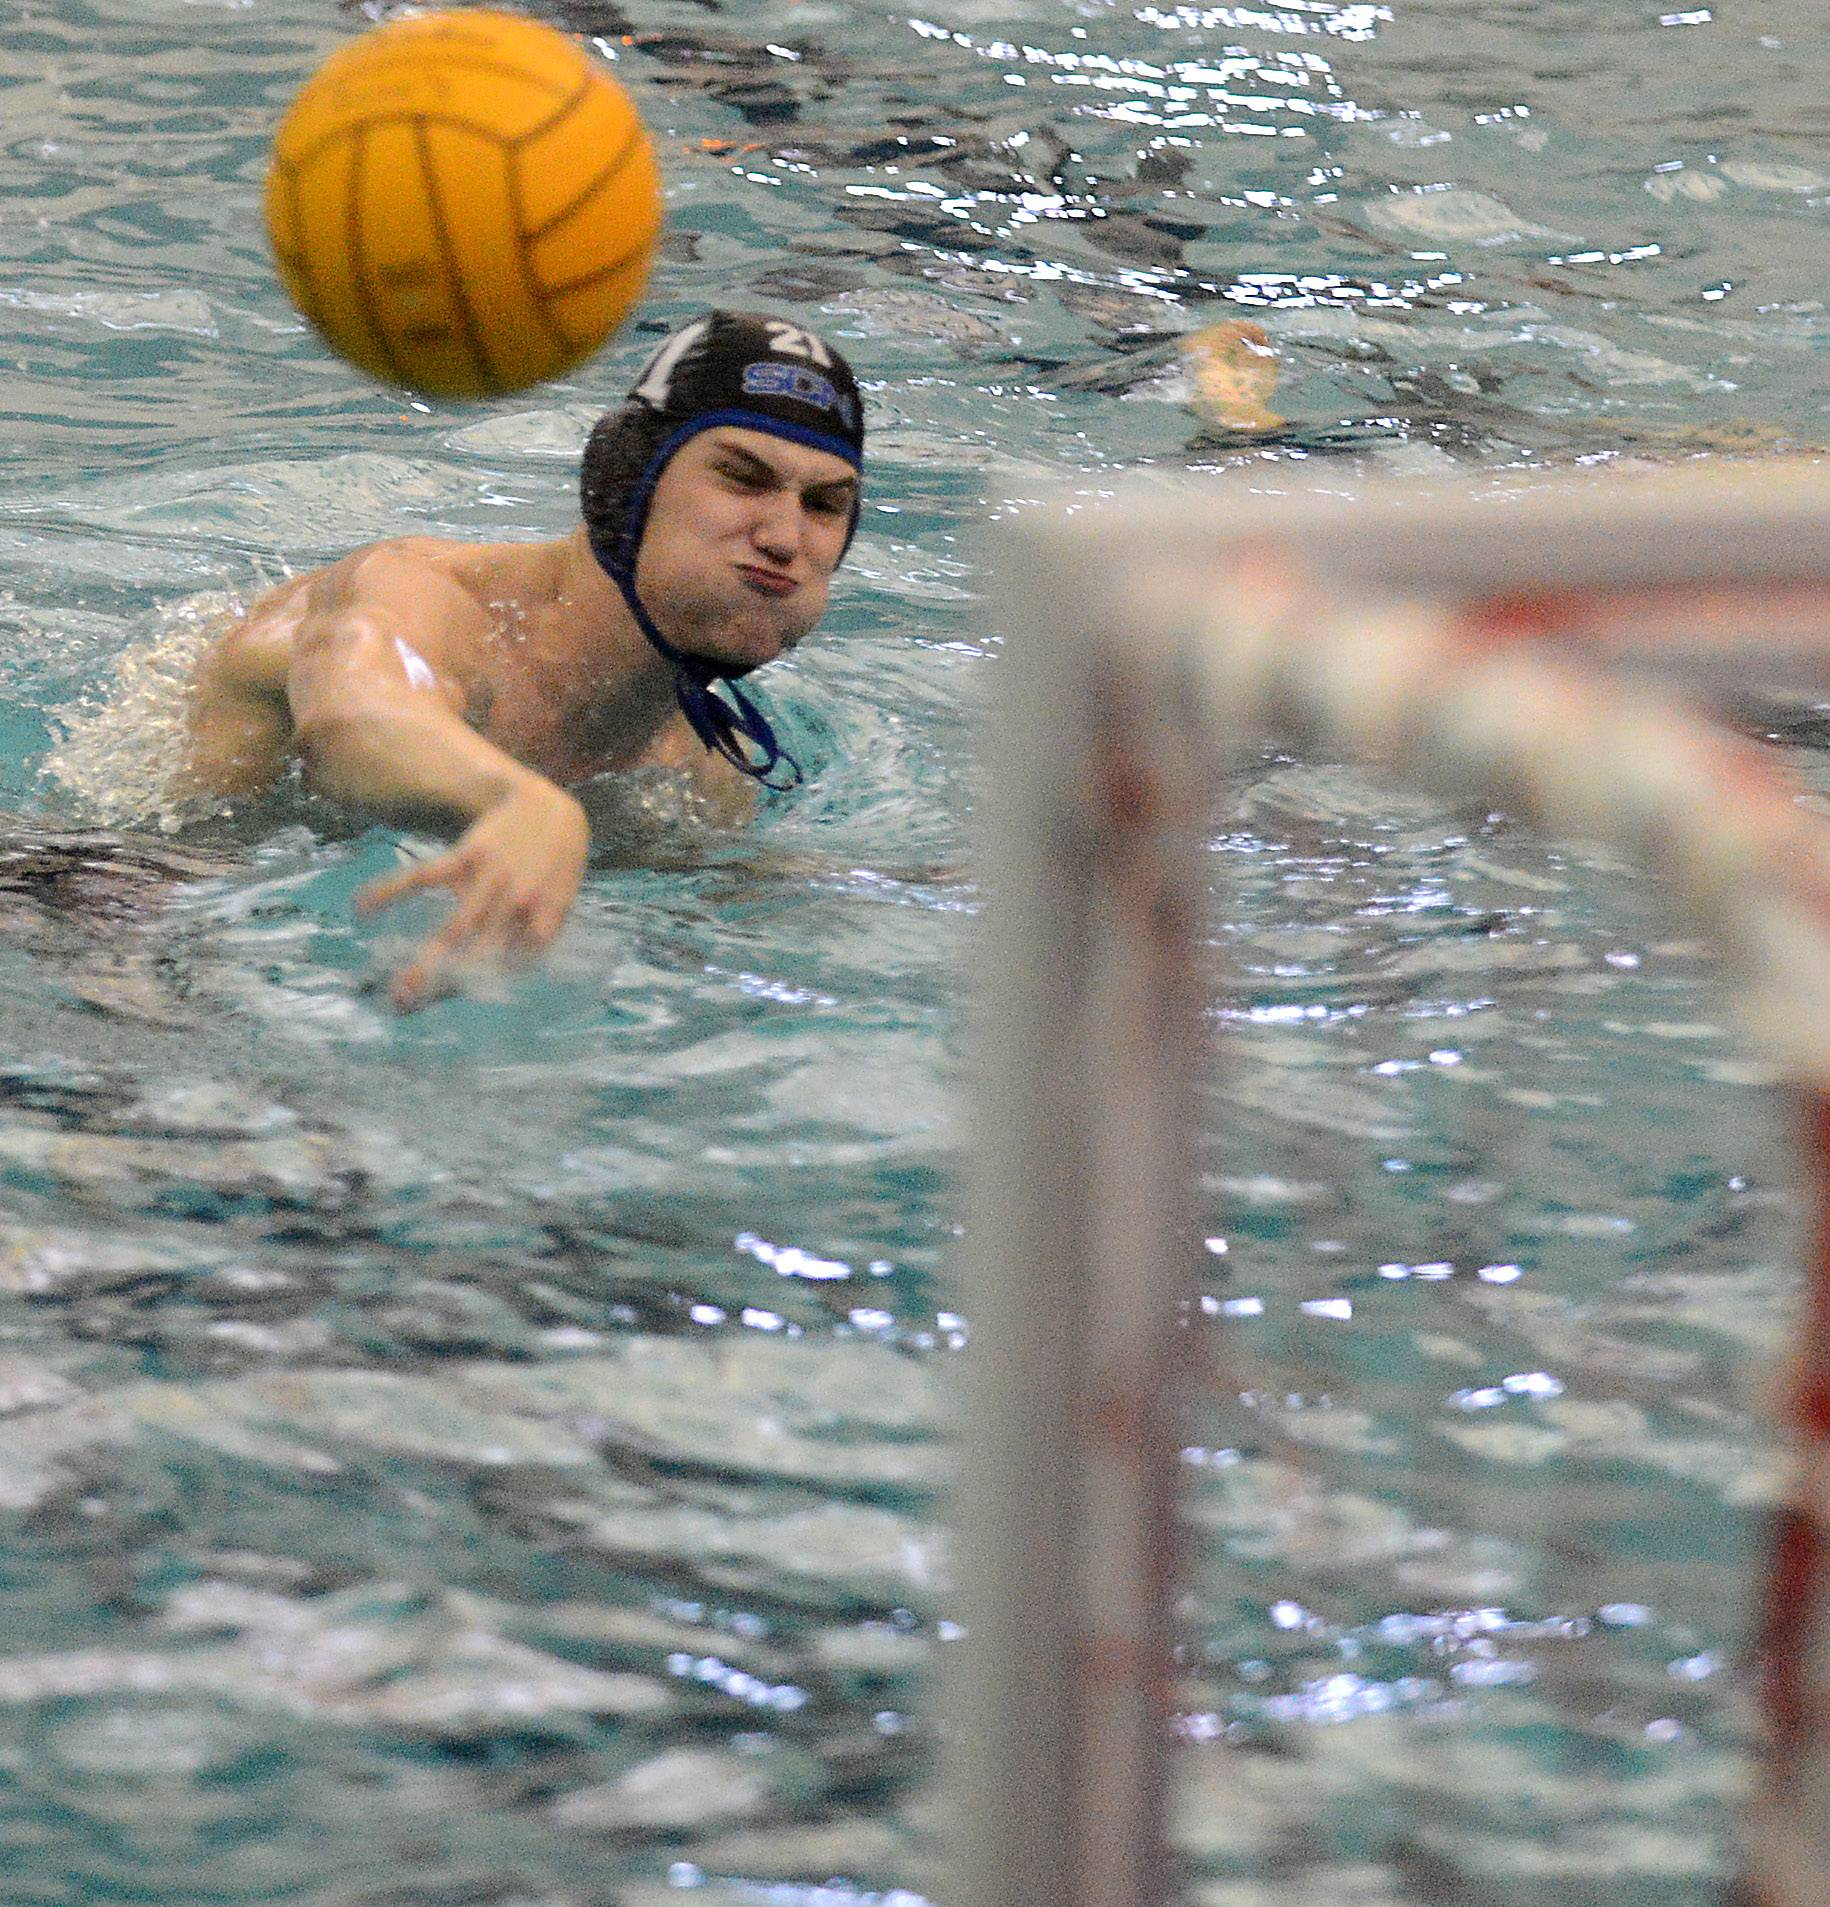 St. Charles North's Nick Traxler scores on a penalty shot against Lockport during water polo action Thursday in St. Charles.